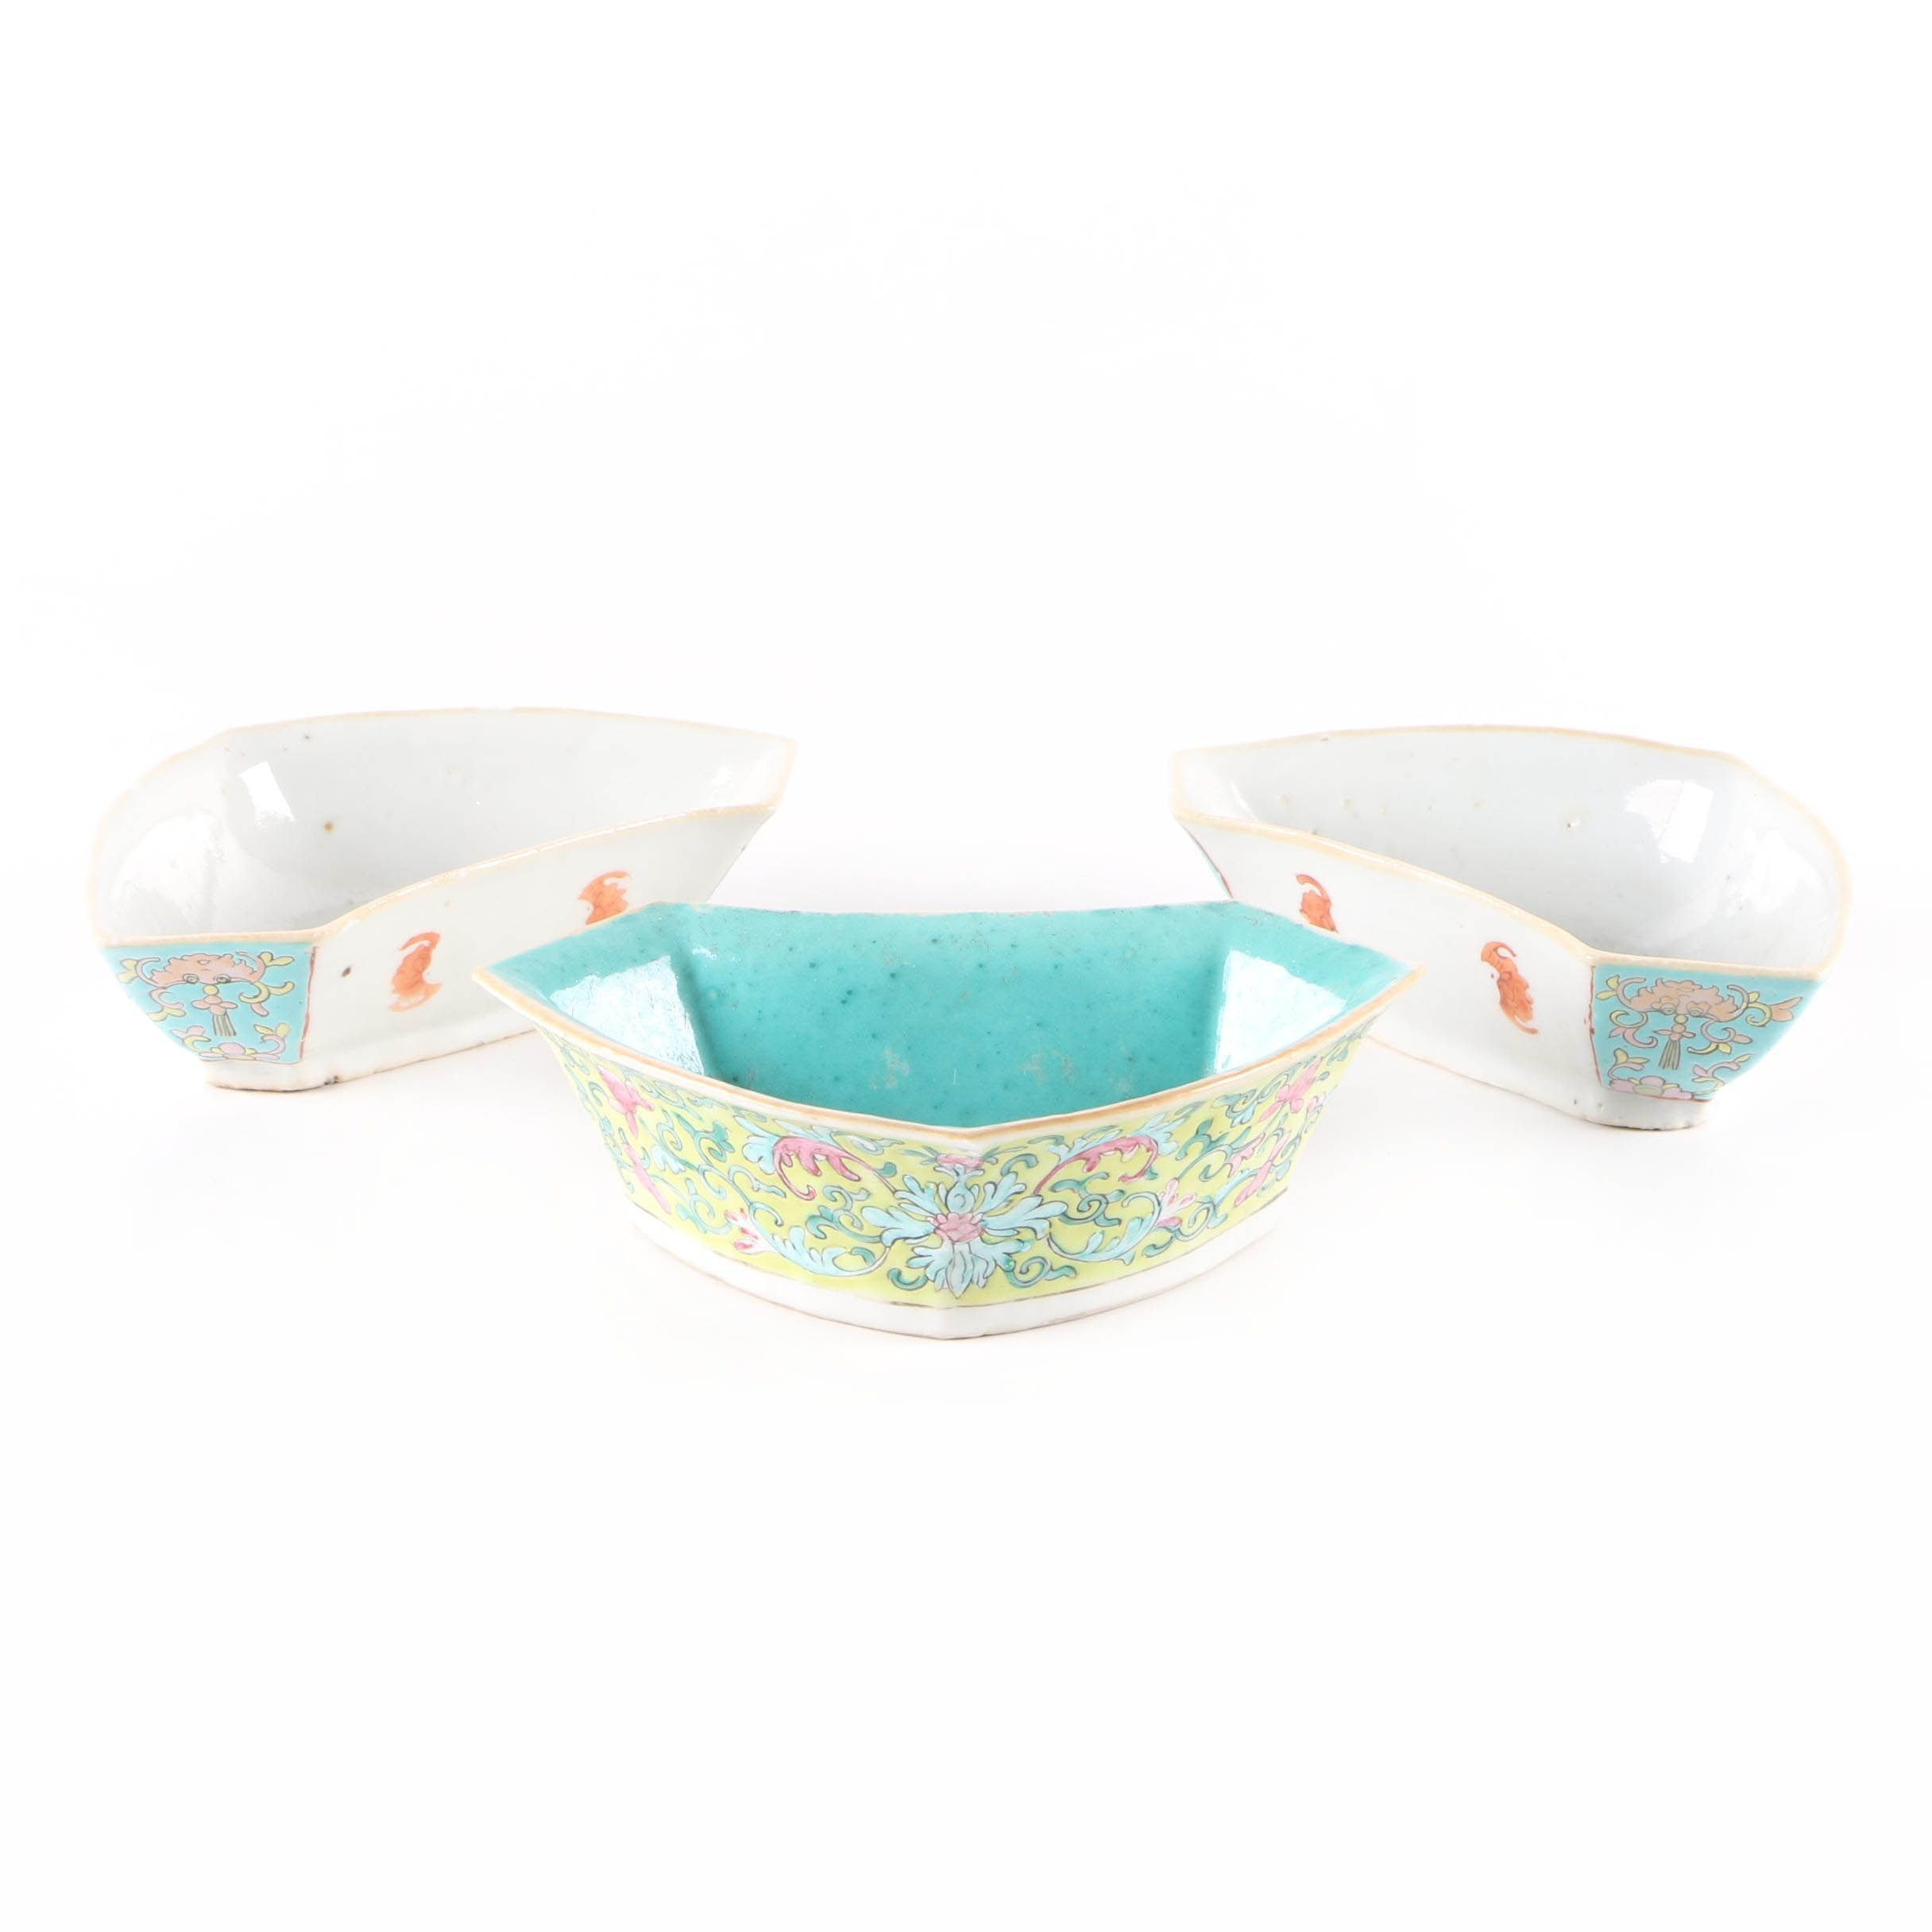 Antique and Vintage Chinese Enameled Porcelain Bowls